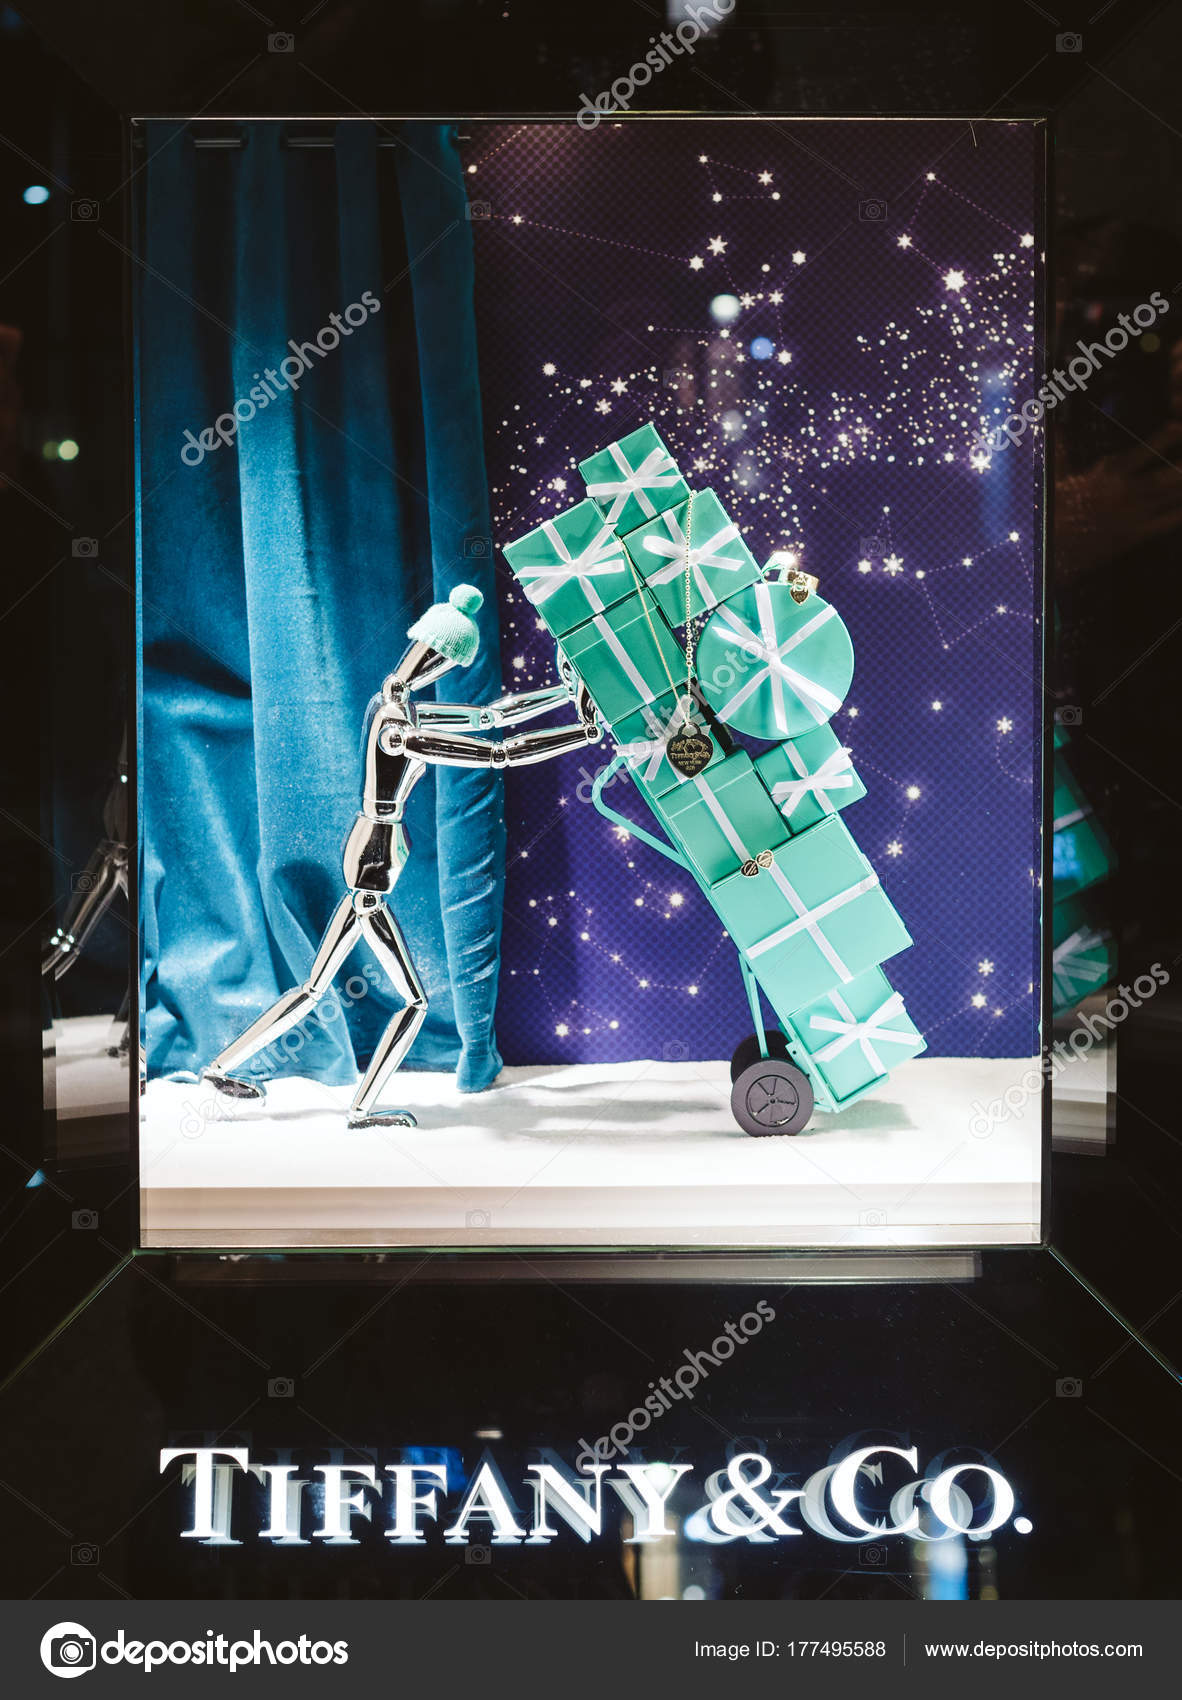 5ce406fe562a7 ... SPAIN - NOV 17, 2017: Tiffany & Co. luxury shopping store window facade  with decorations ready for the Christmas holidays with toys as gifts rings,  ...